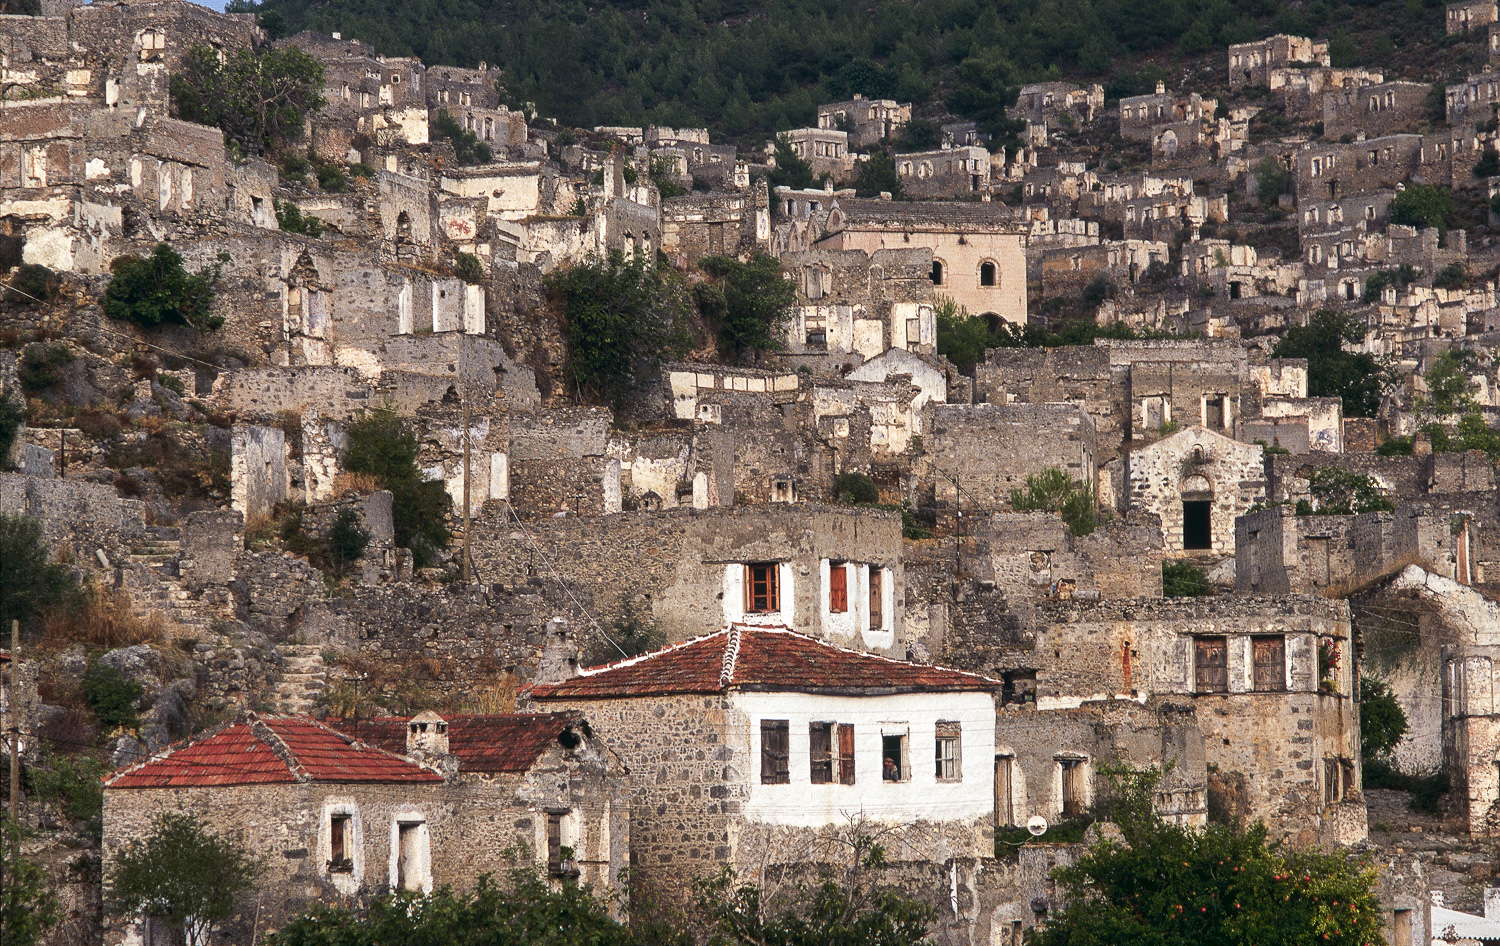 A town in Turkey that was deserted by its Greek people during the First World War. Now a national monument.